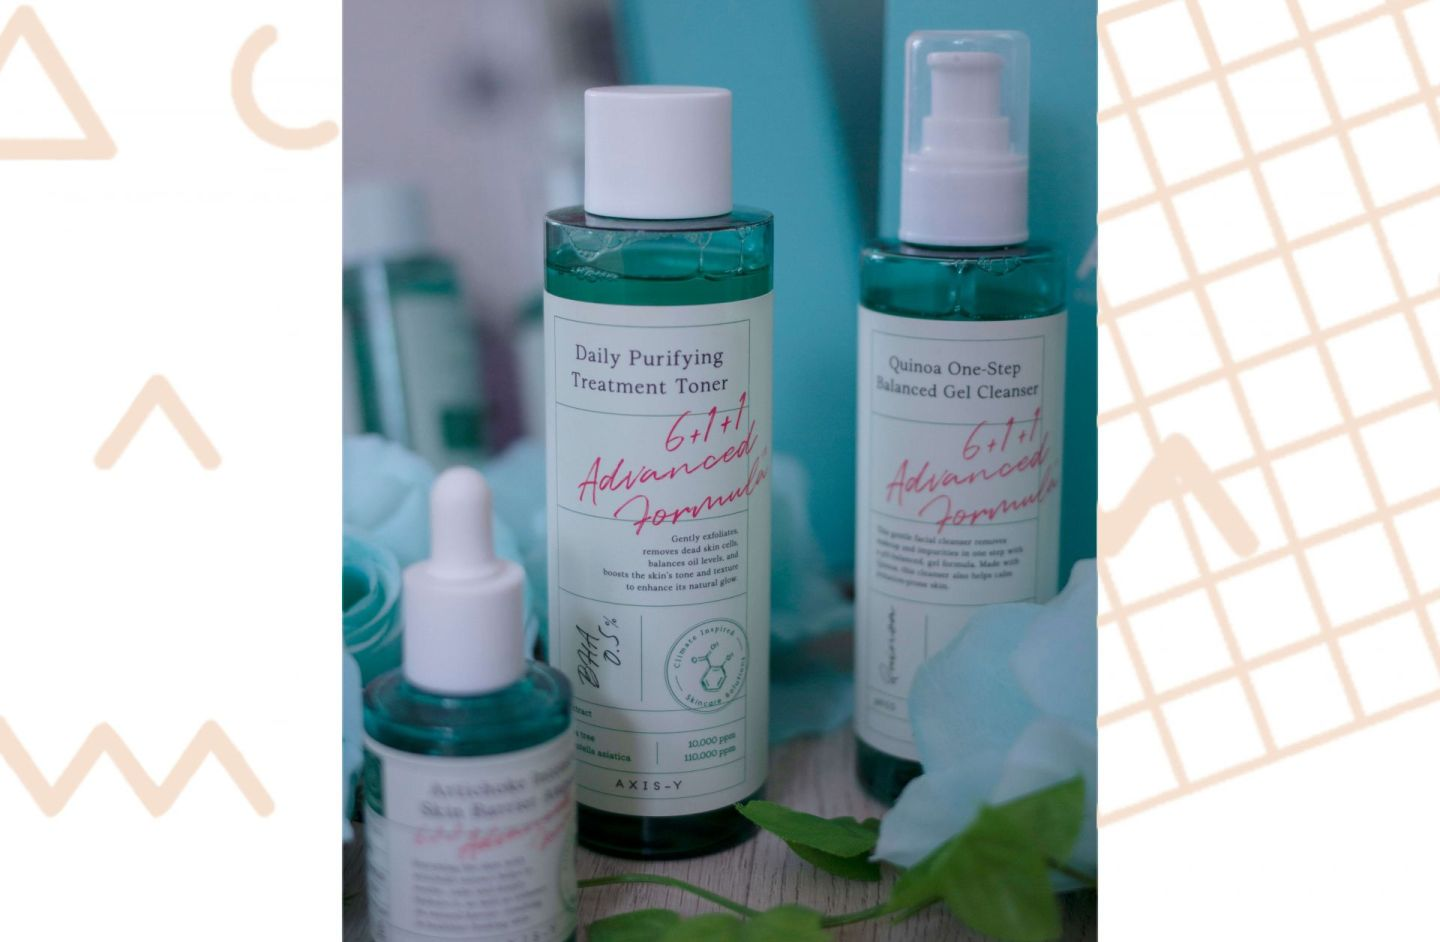 Axis-y climate inspired skincare solutions 611 formula